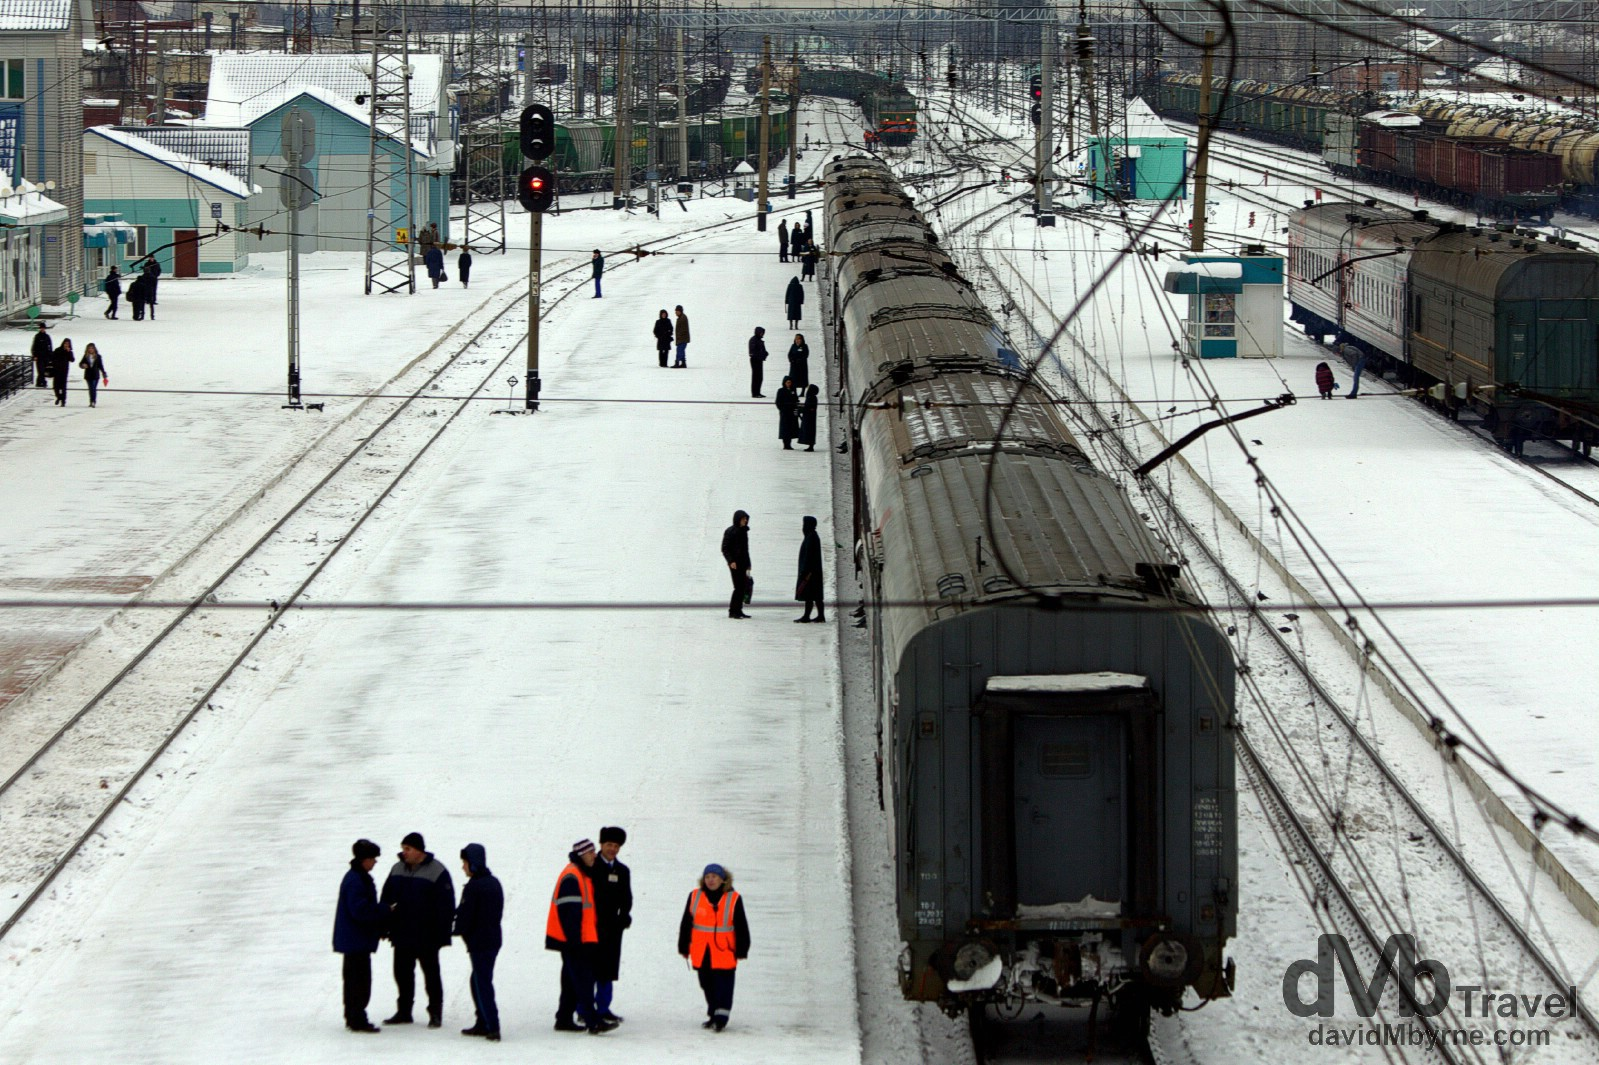 Train 037, minus its locomotive, sitting in Tayga train station as seen from a bridge spanning the station tracks. Tayga, Siberian Russia. November 12th 2012.